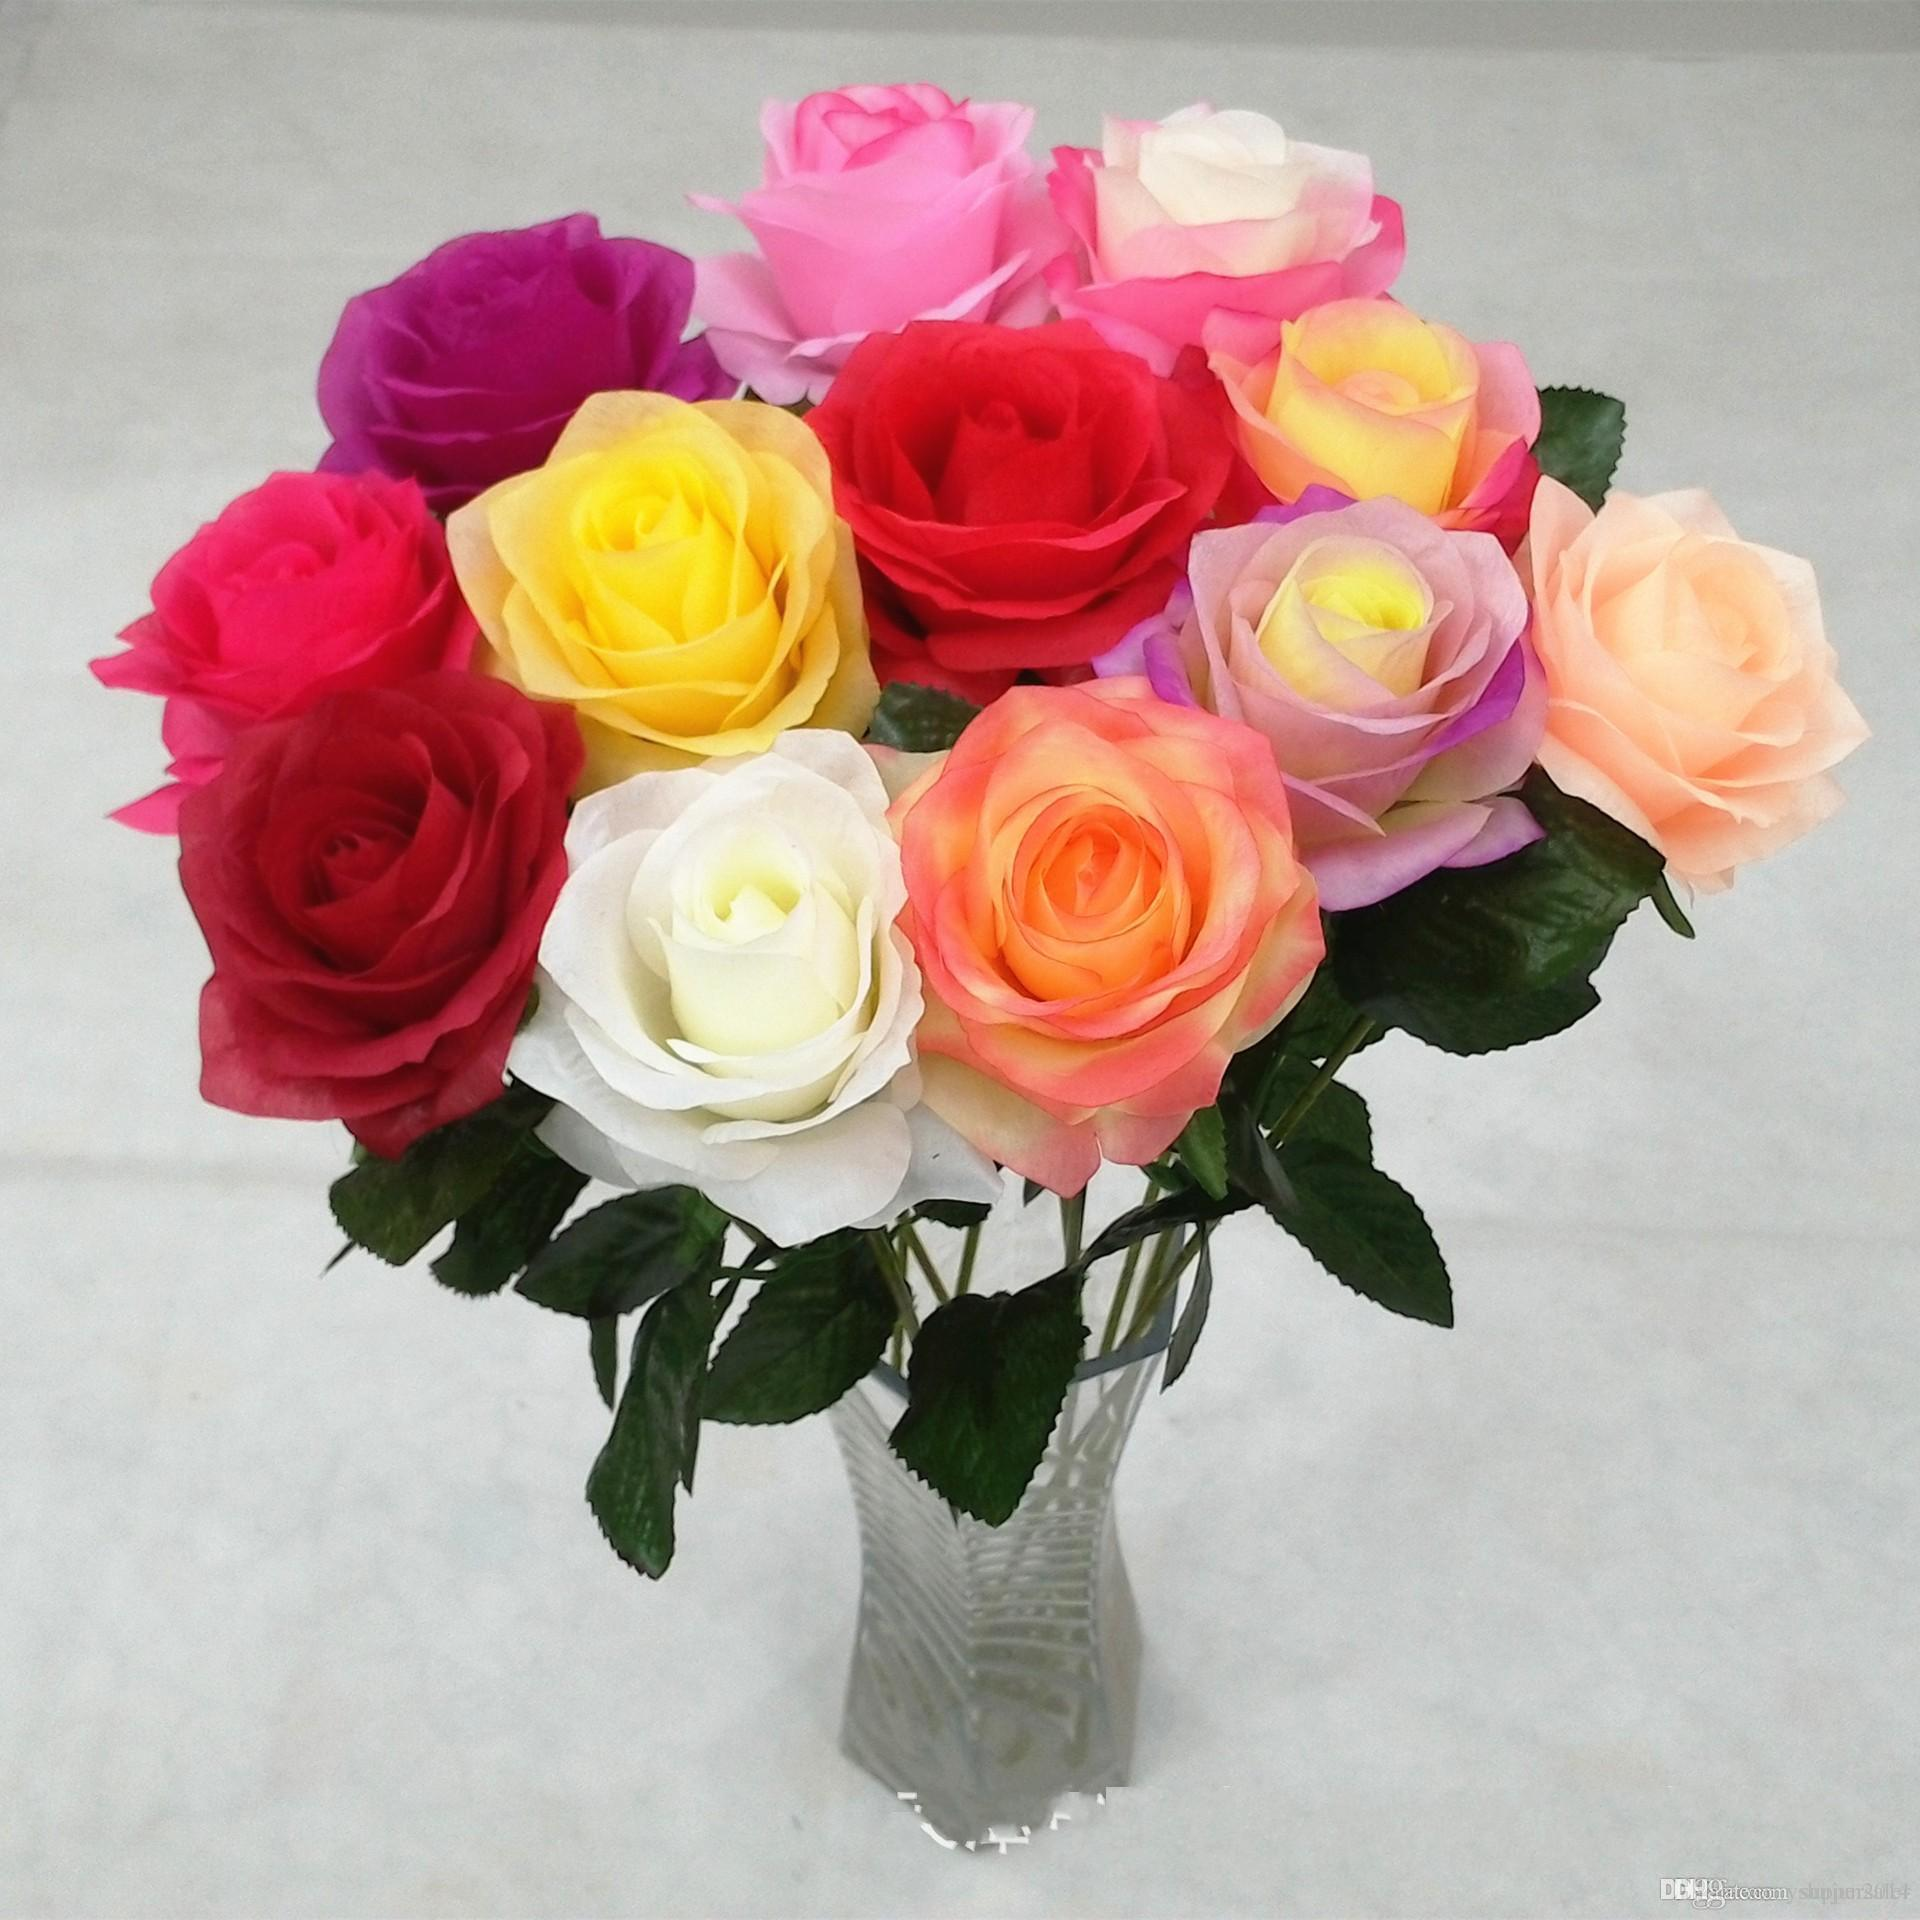 Buy best and latest brand 2016 new styles artificial rose silk craft buy best and latest brand 2016 new styles artificial rose silk craft flowers real touch flowers for wedding christmas room decoration cheap sale dhgate izmirmasajfo